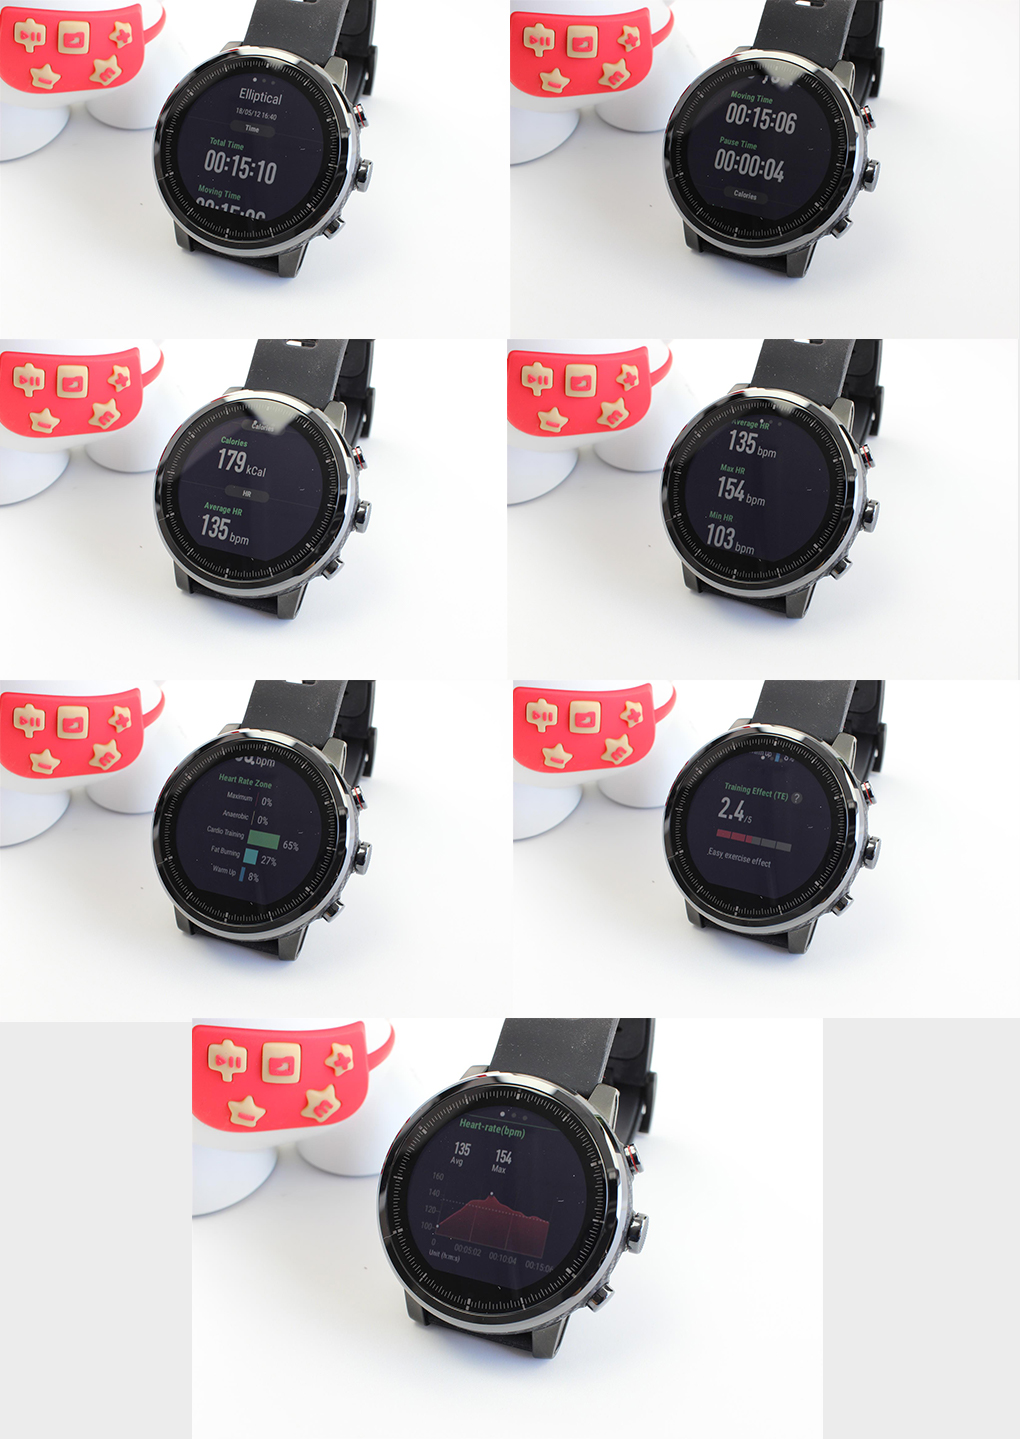 huami amazfit stratos smartwatch 2 neues wearable mit. Black Bedroom Furniture Sets. Home Design Ideas